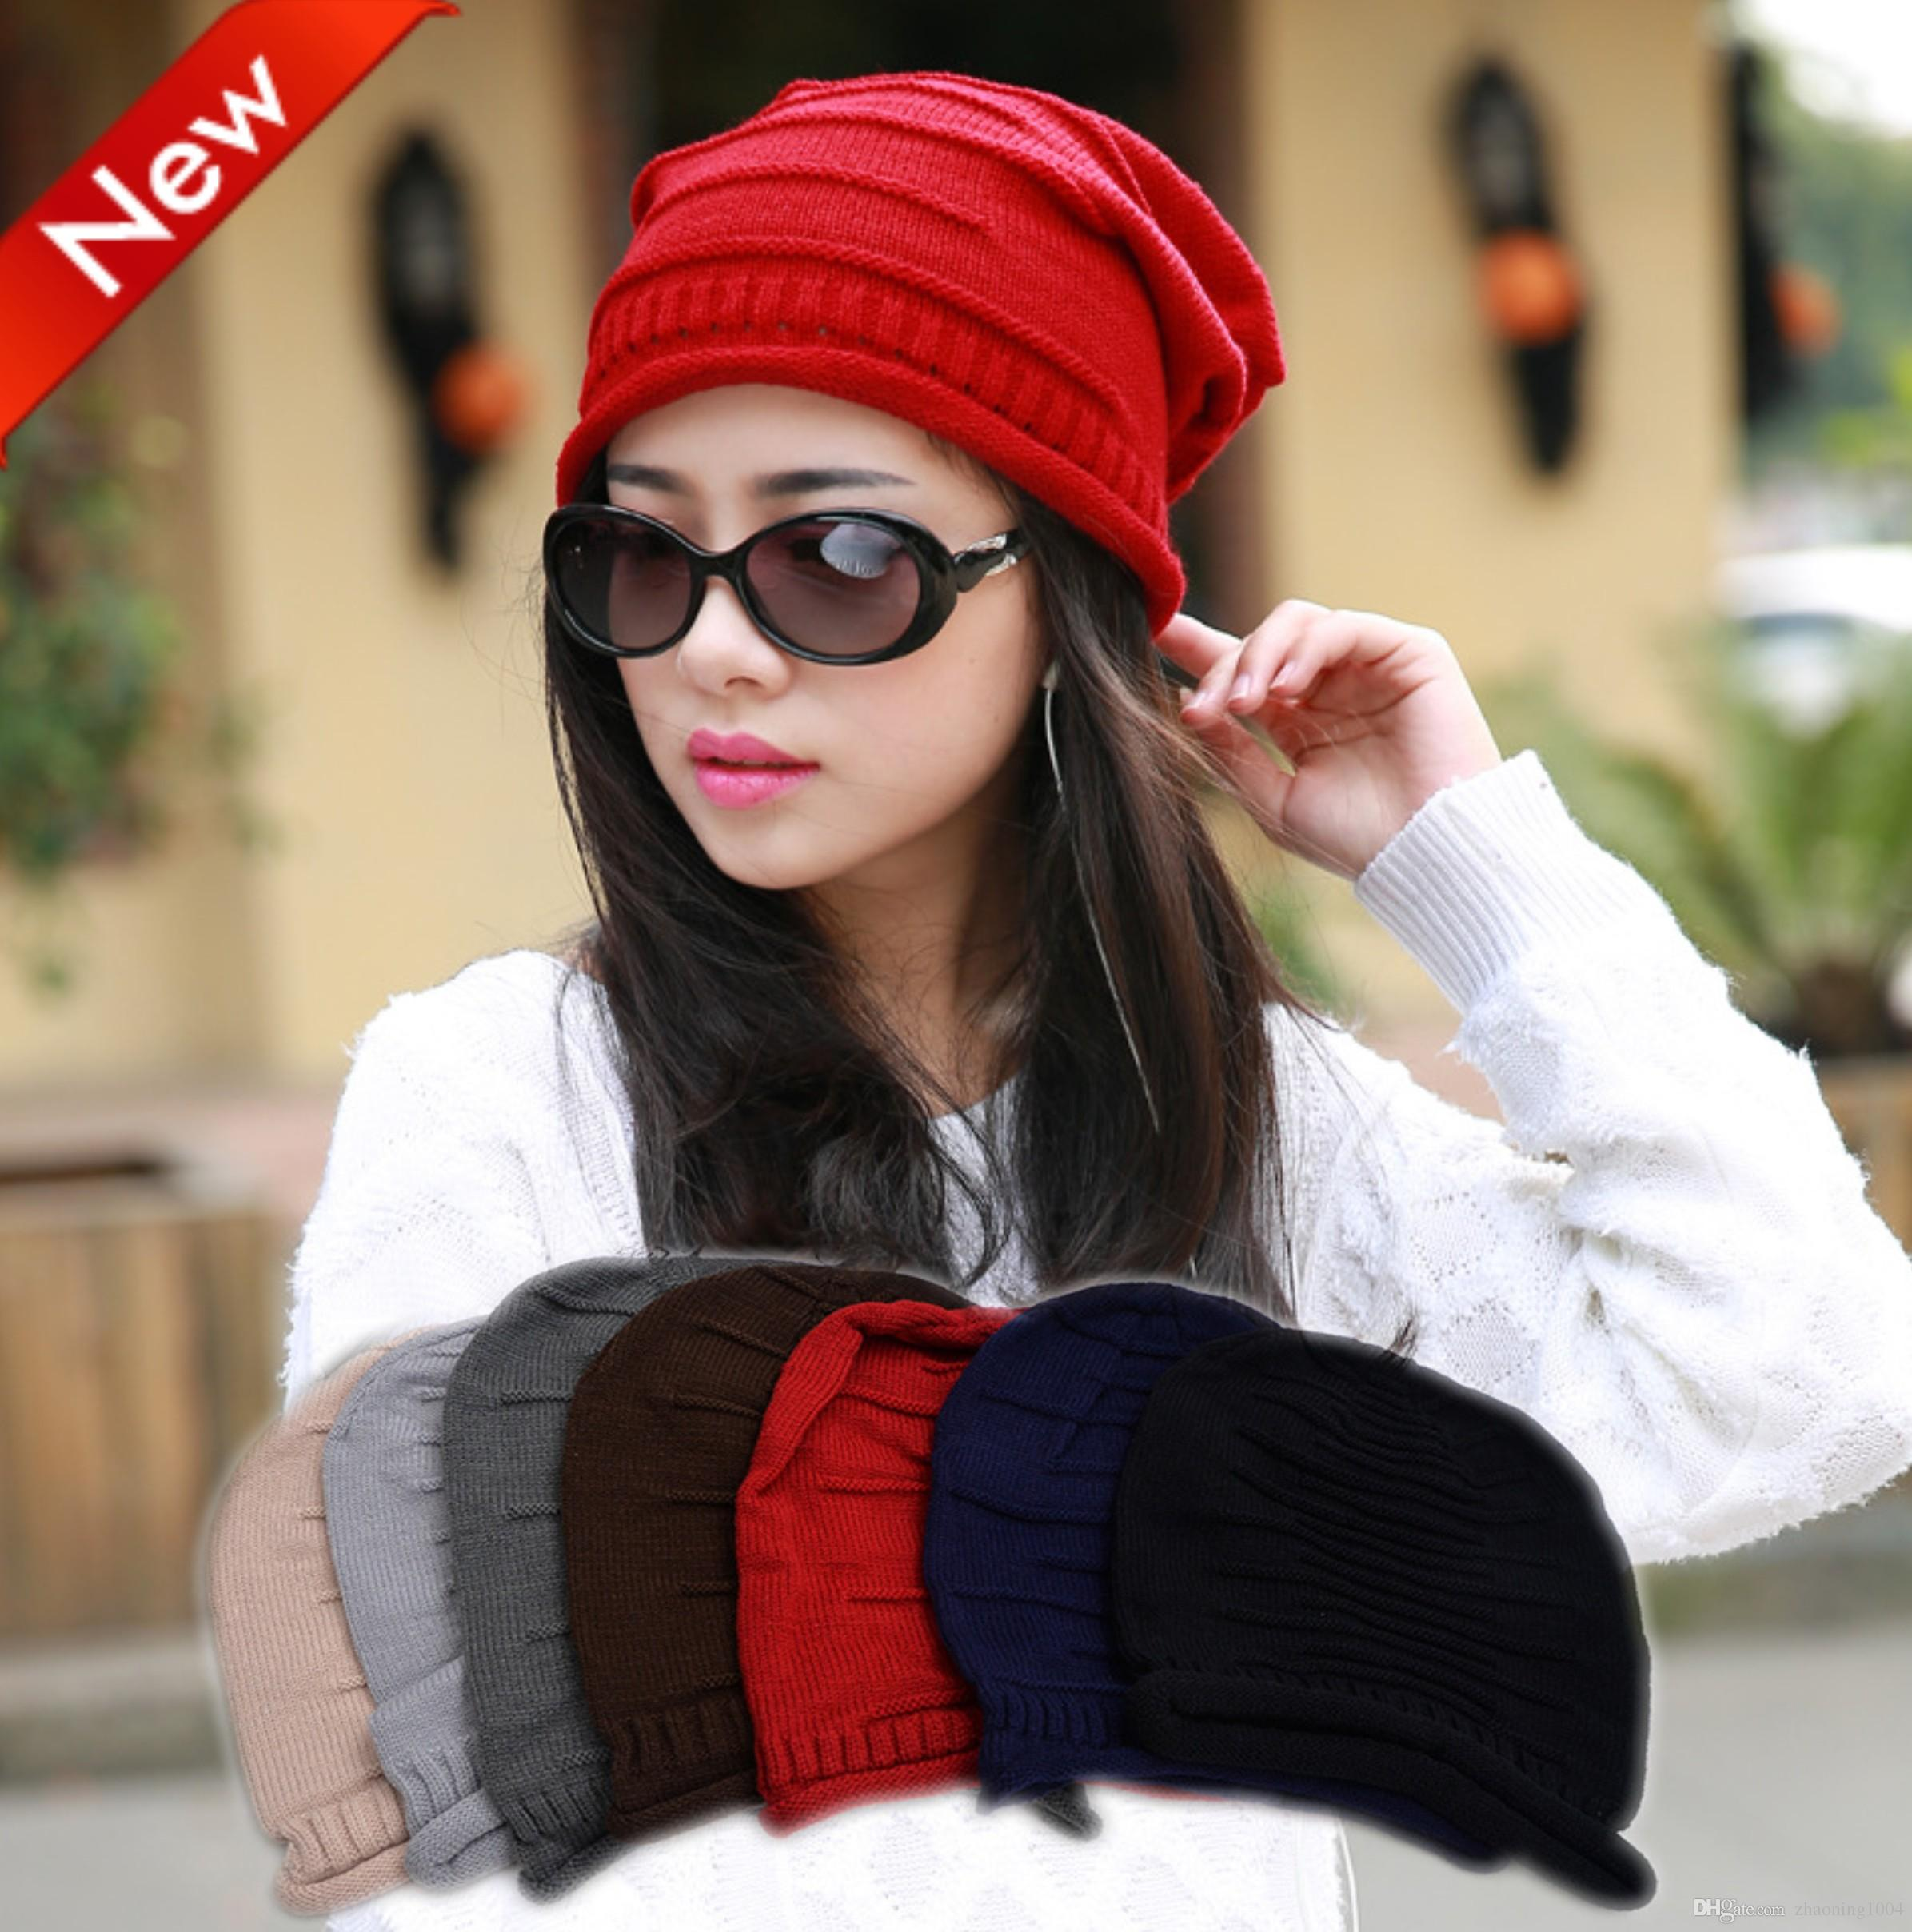 Designer Ladies Plain Knitted Slouchy Beanies Mens Womens Fancy Winter Head  Warmer Hats Adults Woman Chemo Cap Red Black Beige 7 Solid Color Knit Hat  Hats ... c2b86435bf0